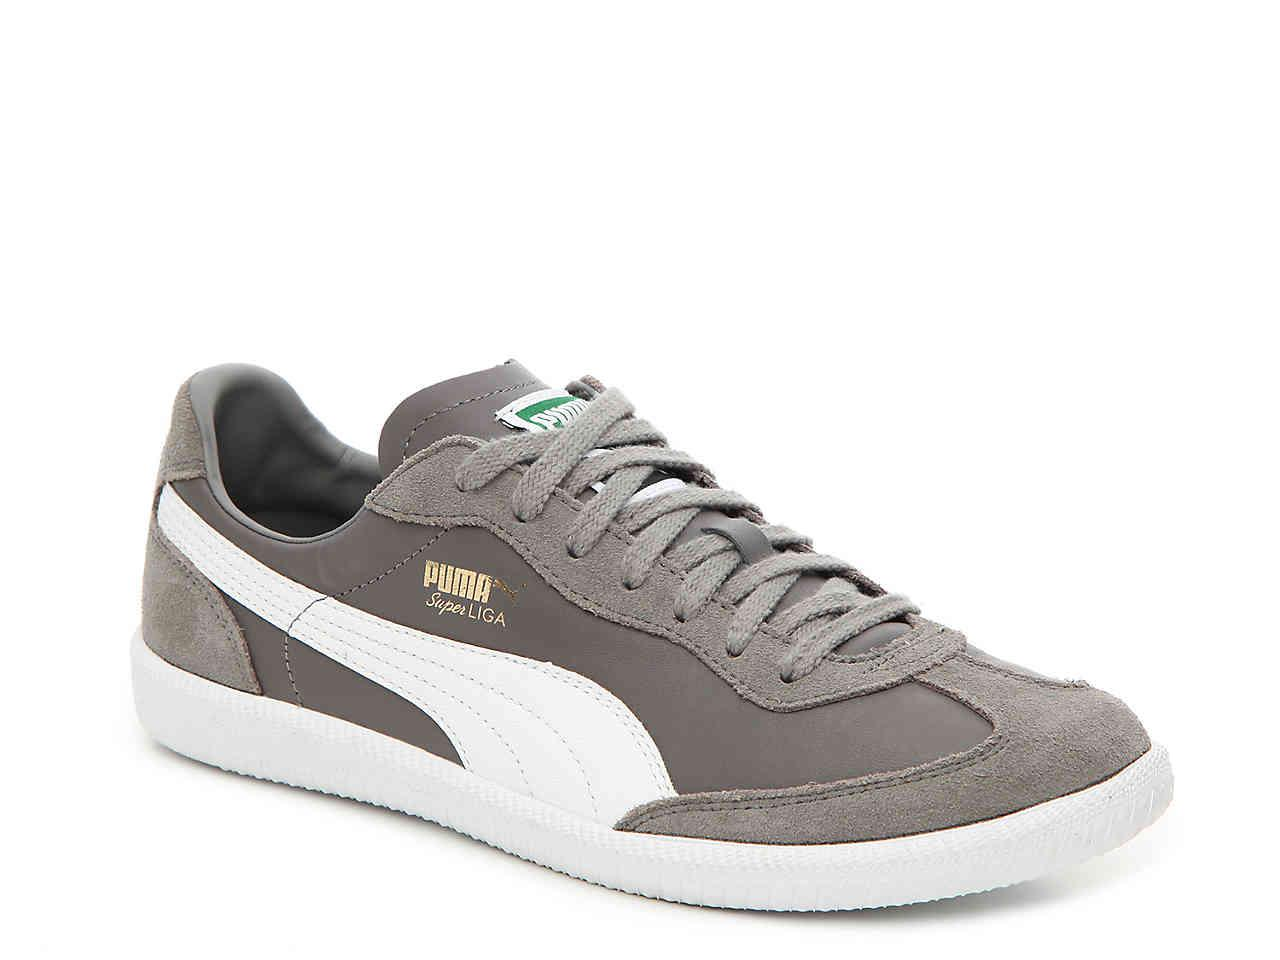 cc65eb729fa0 ... Casual Shoes  PUMA. Mens Gray Super Liga Og Retro Sneaker ...